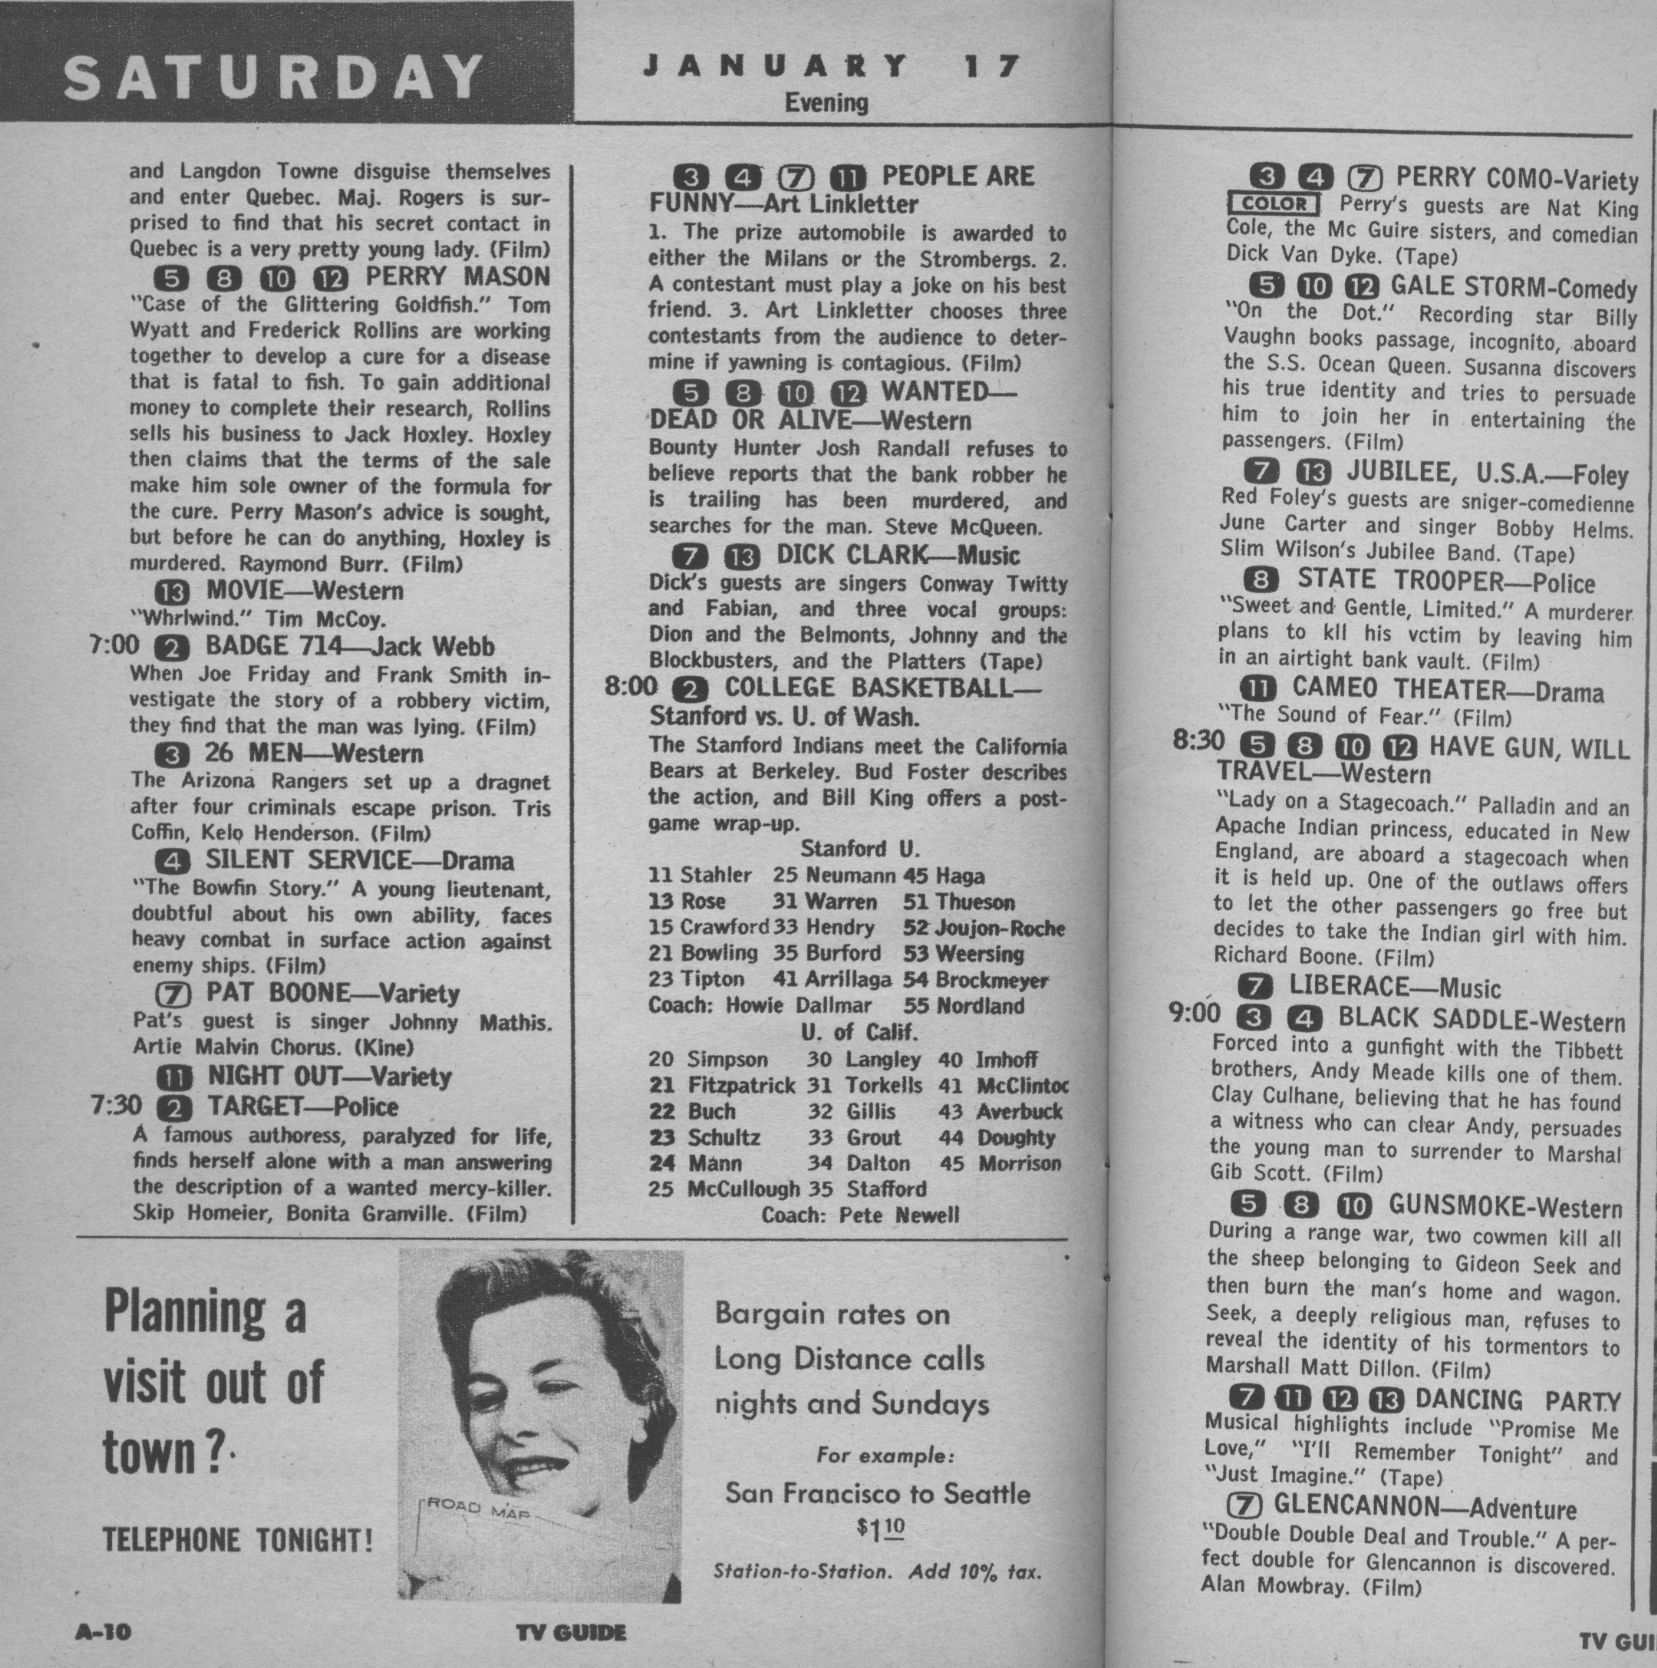 ctva - us tv listings - 1959